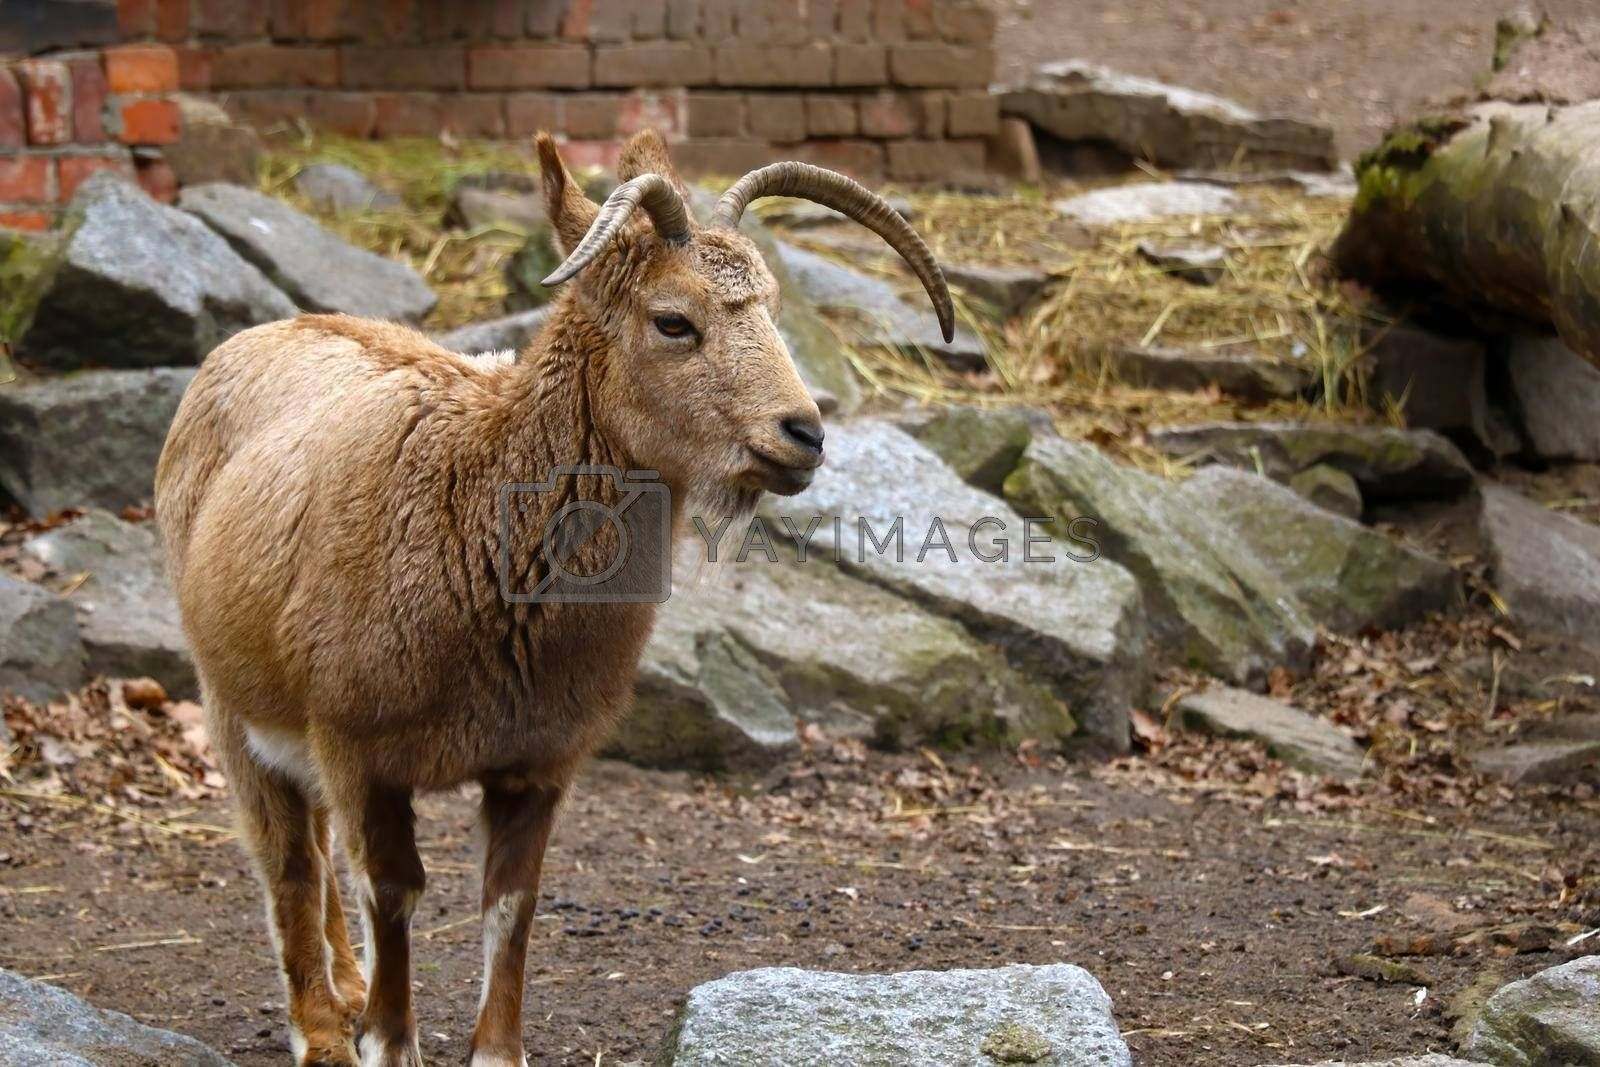 Royalty free image of A mountain goat stands in the animal park close-up. by kip02kas